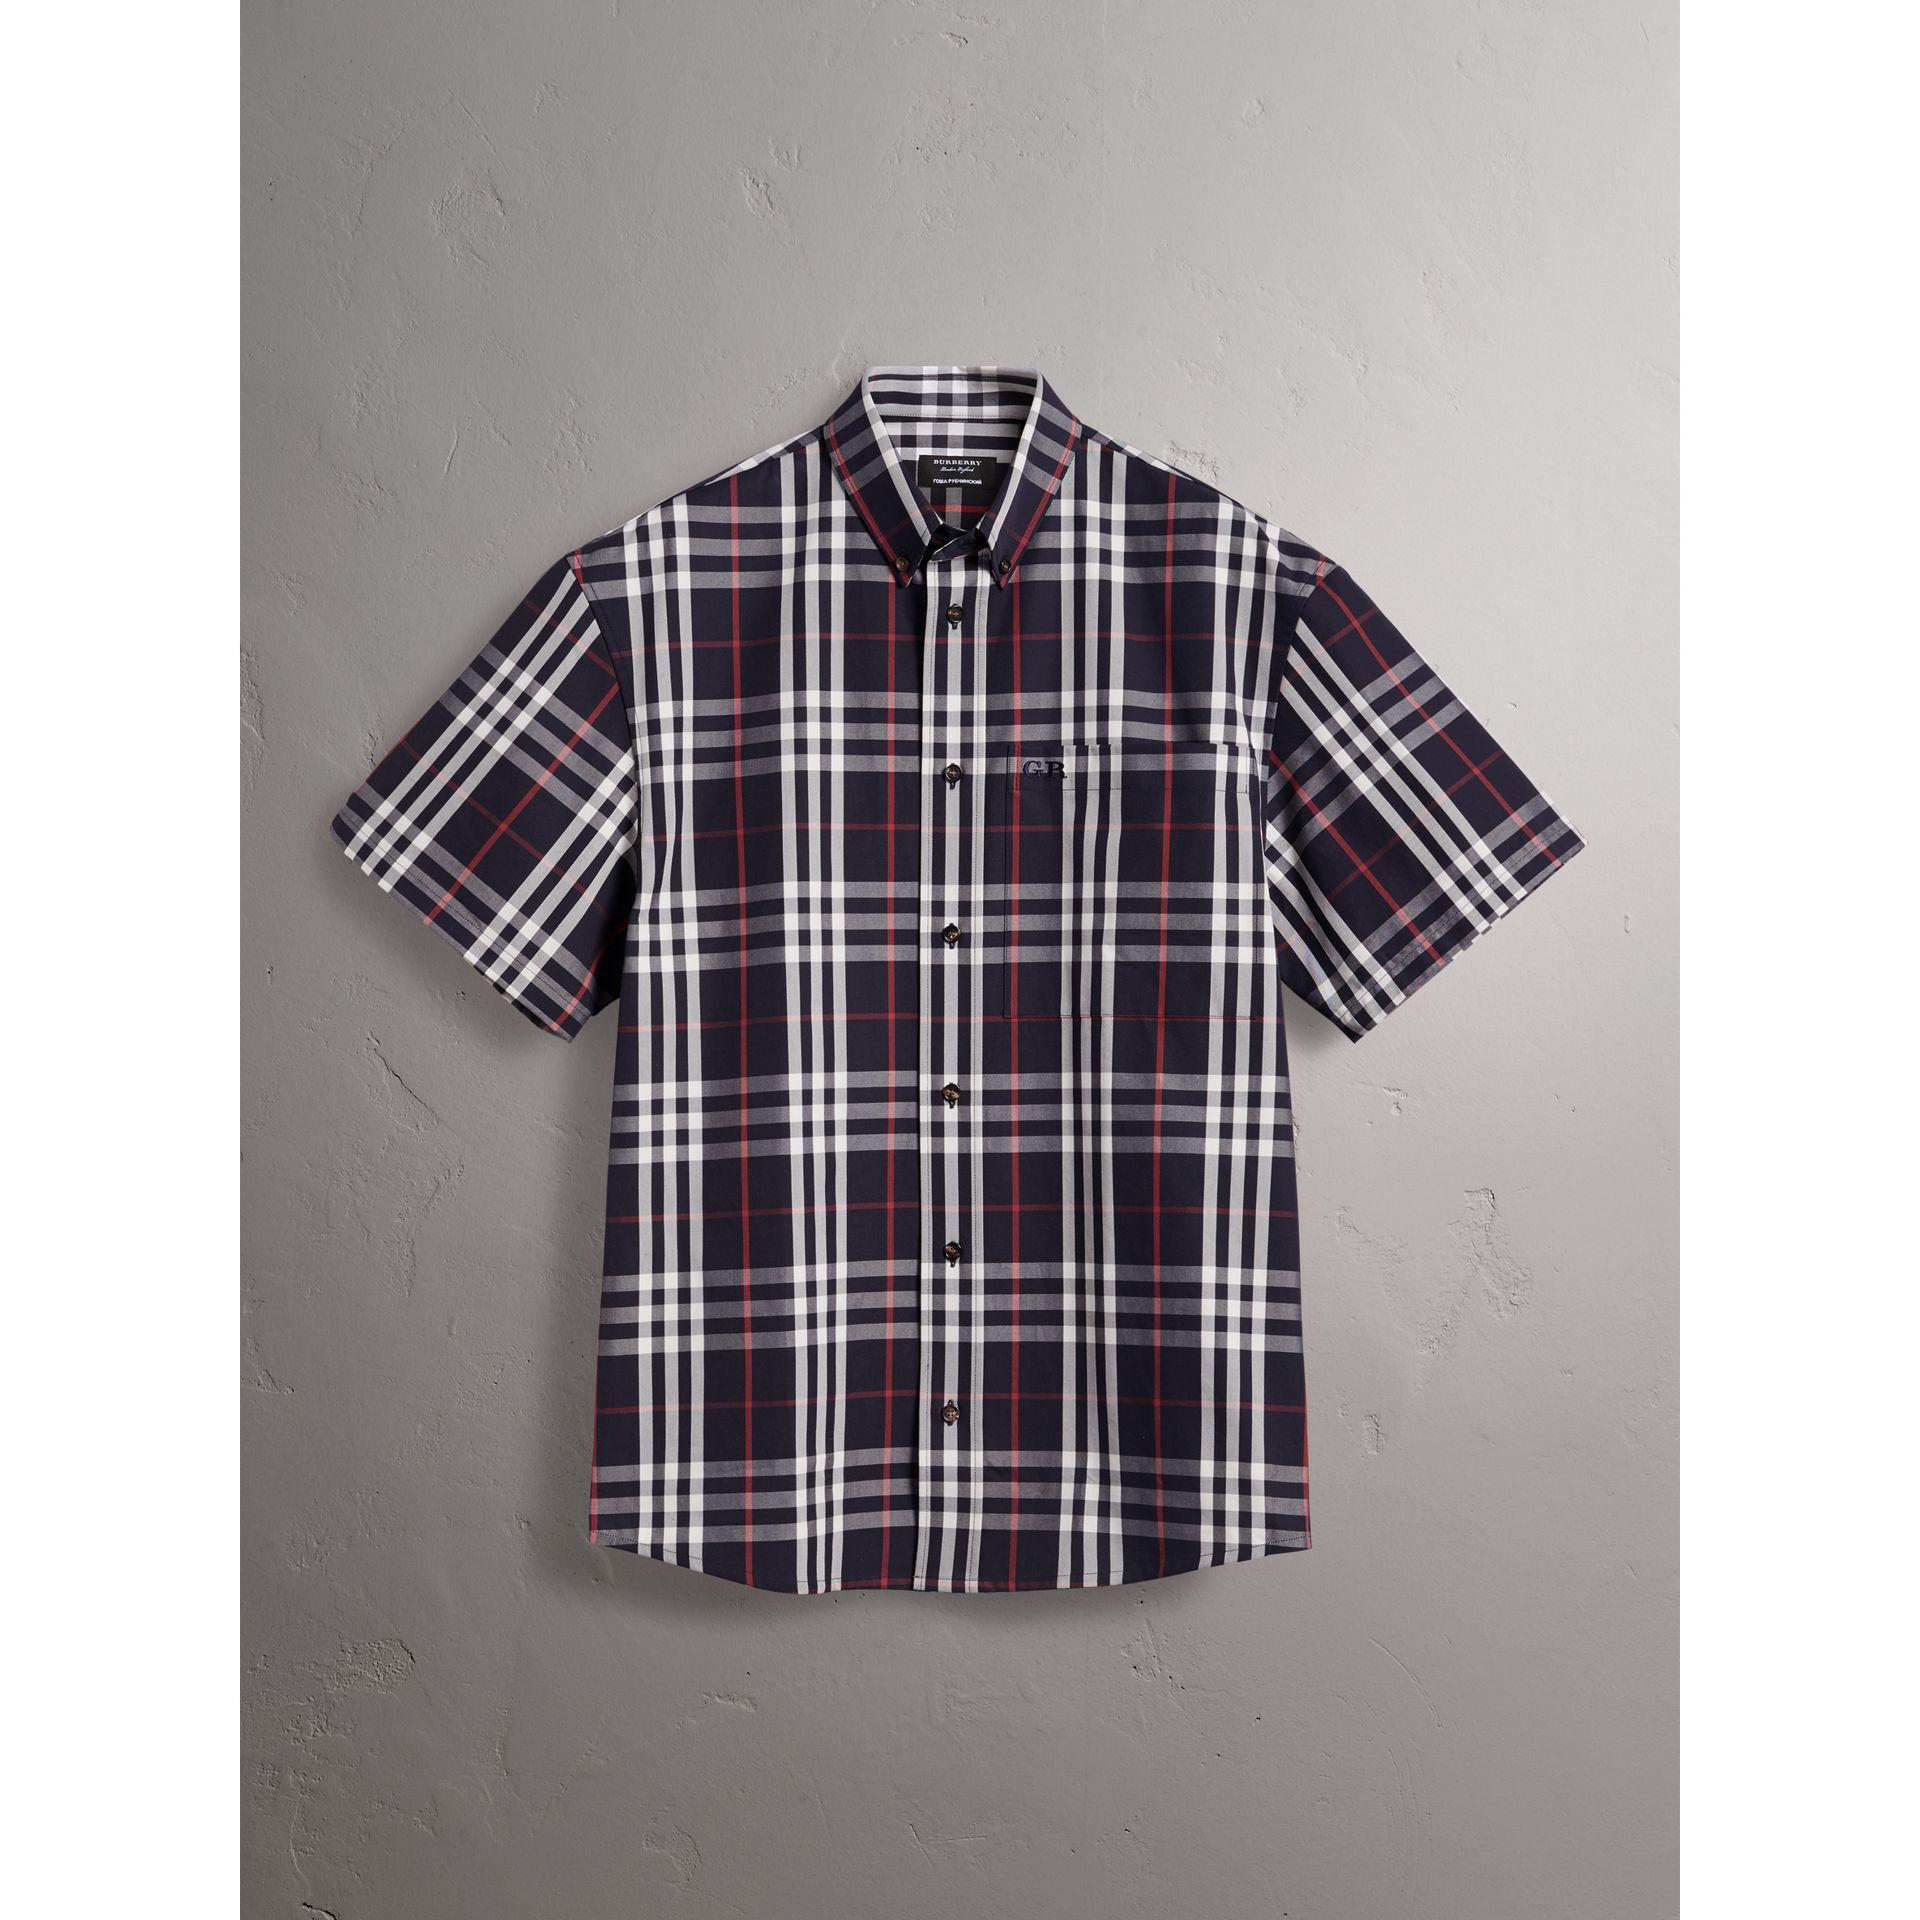 Gosha x Burberry Short-sleeve Check Shirt in Navy | Burberry - gallery image 4